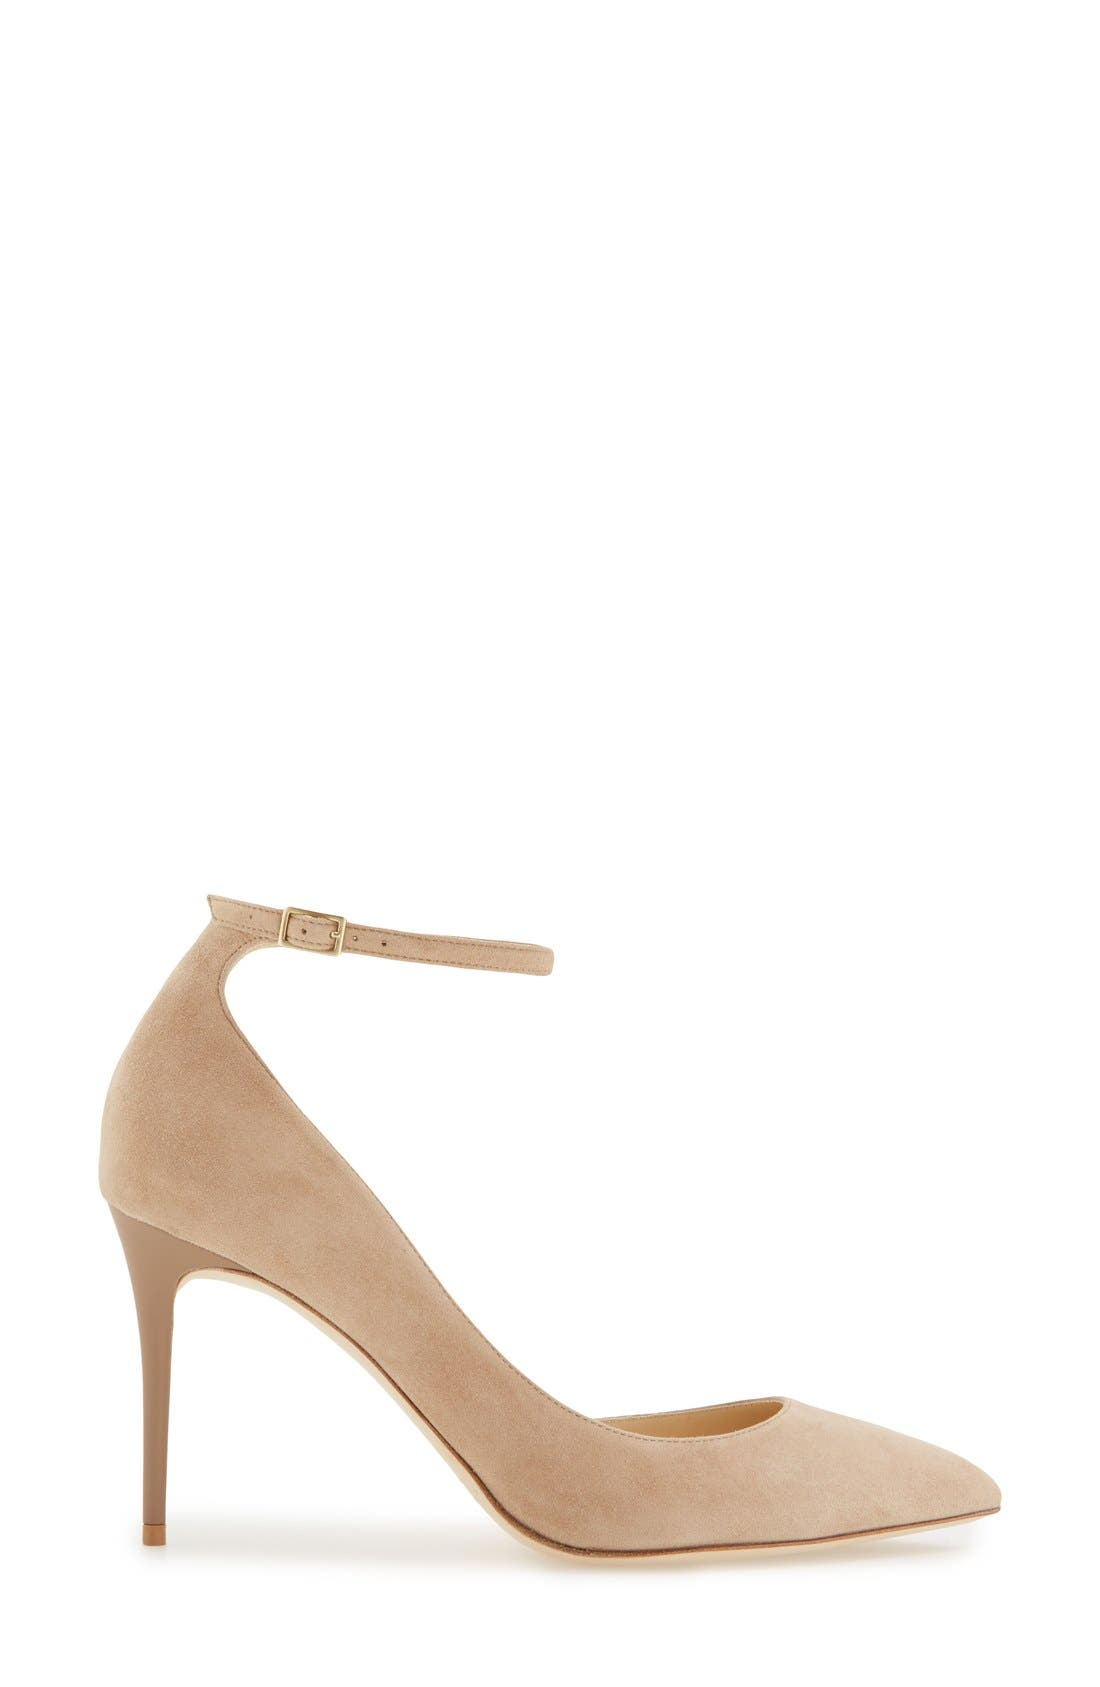 Alternate Image 4  - Jimmy Choo 'Lucy' Half d'Orsay Pointy Toe Pump (Women)